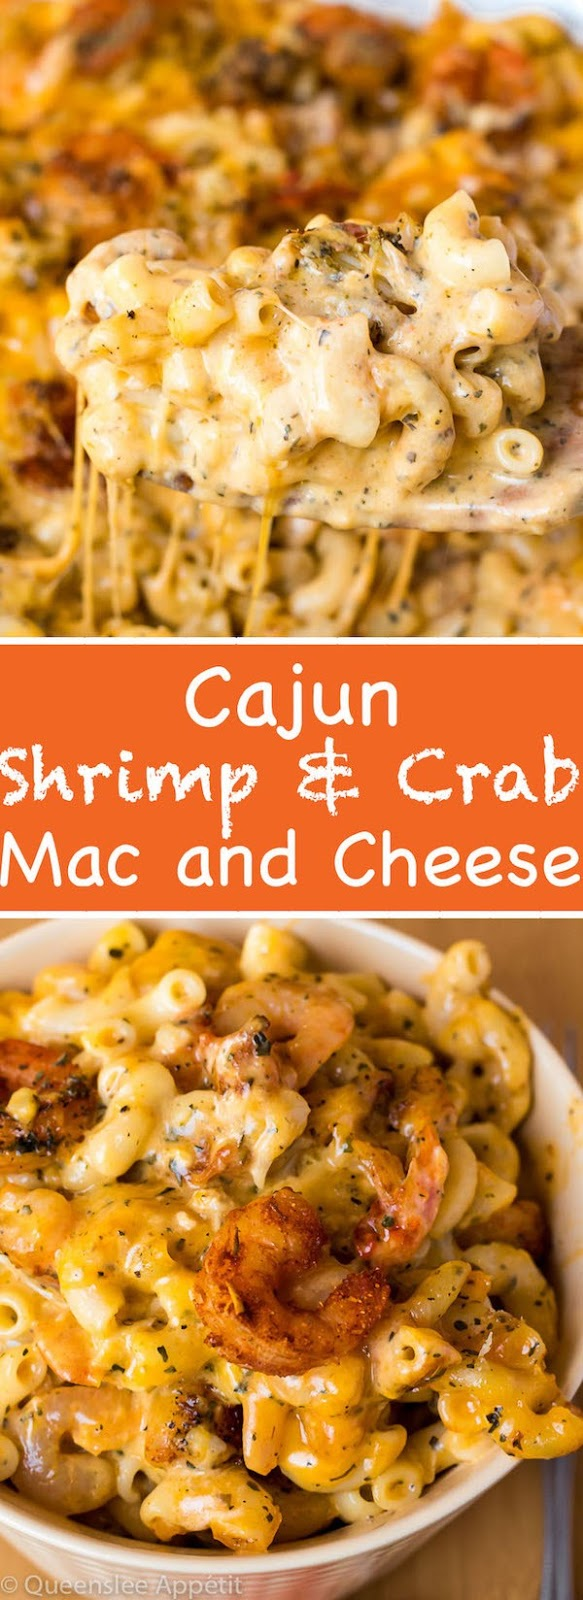 Creamy Cajun Shrimp and Crab Mac and Cheese